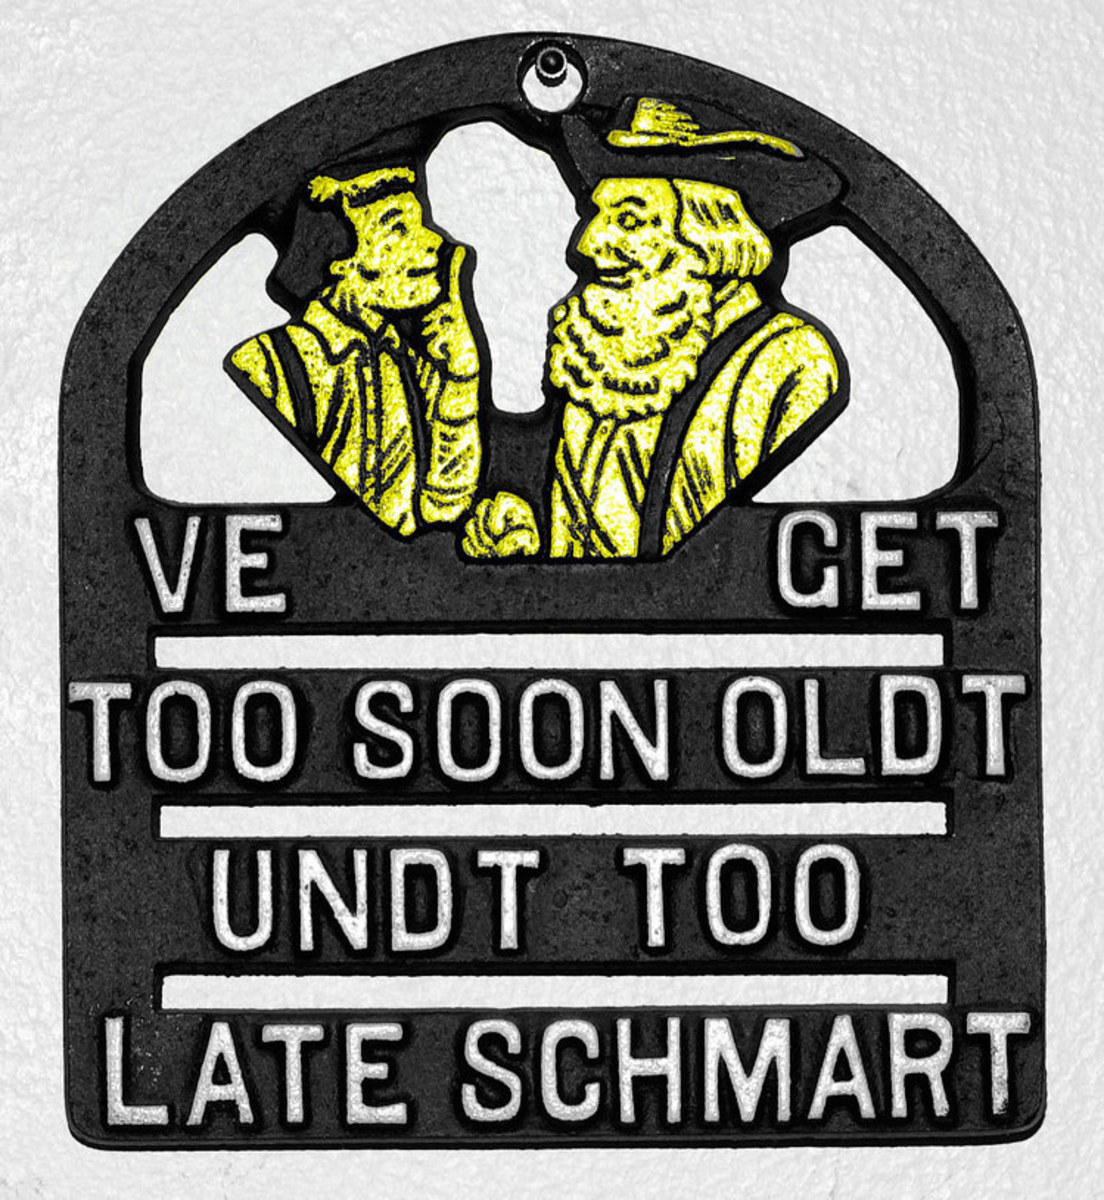 Should you keep something your grandma kept in her kitchen? Reminding us of aging and the mistakes we've made, this saying is attributed to the U.S. Pennsylvania Dutch.